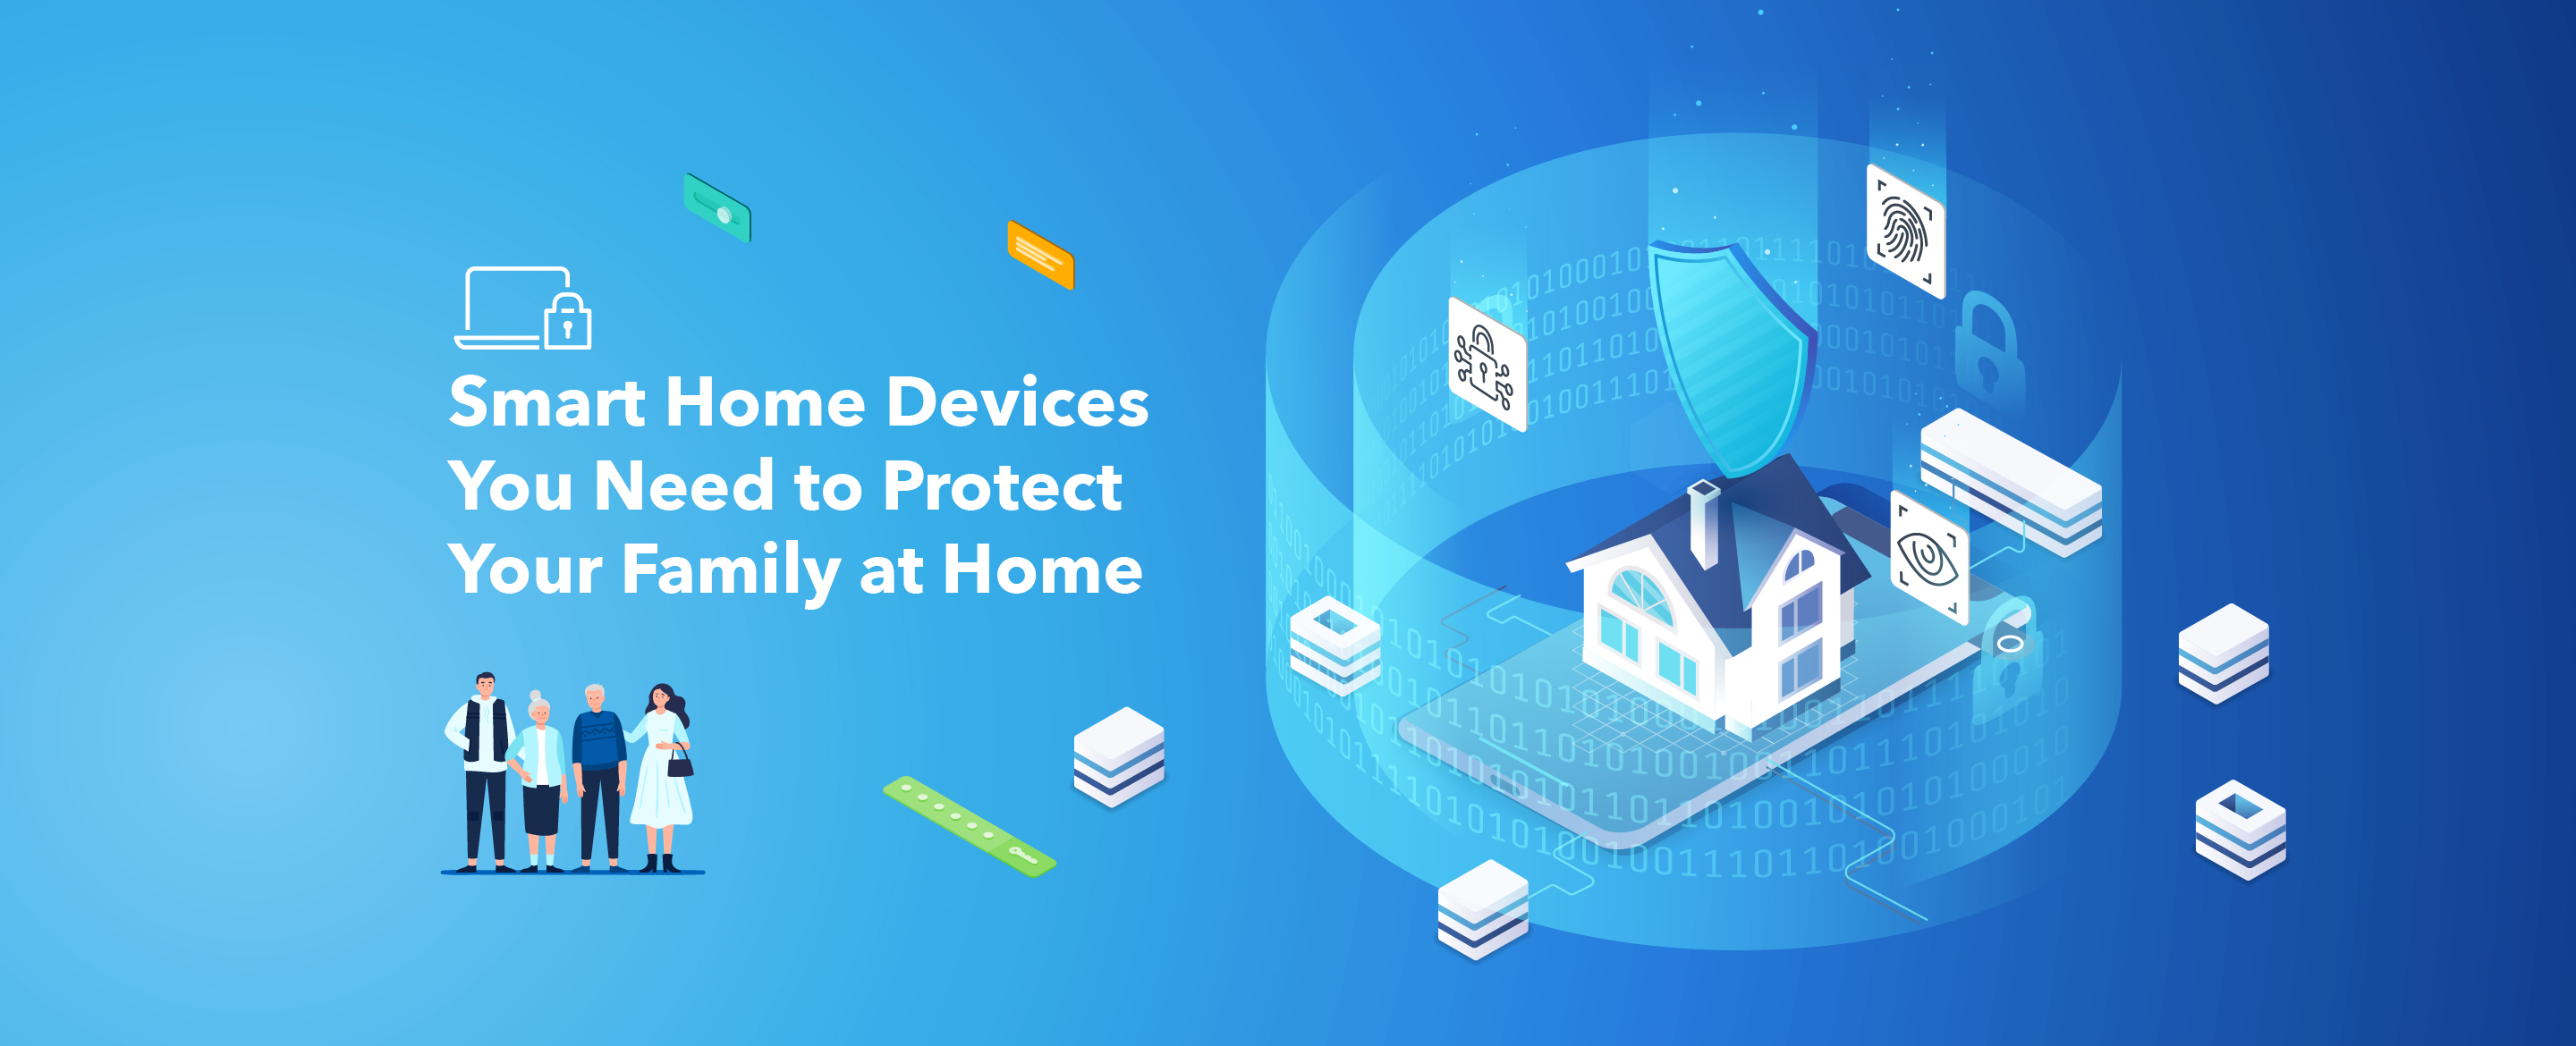 How to Protect Your Family at Home with Smart Home Devices?